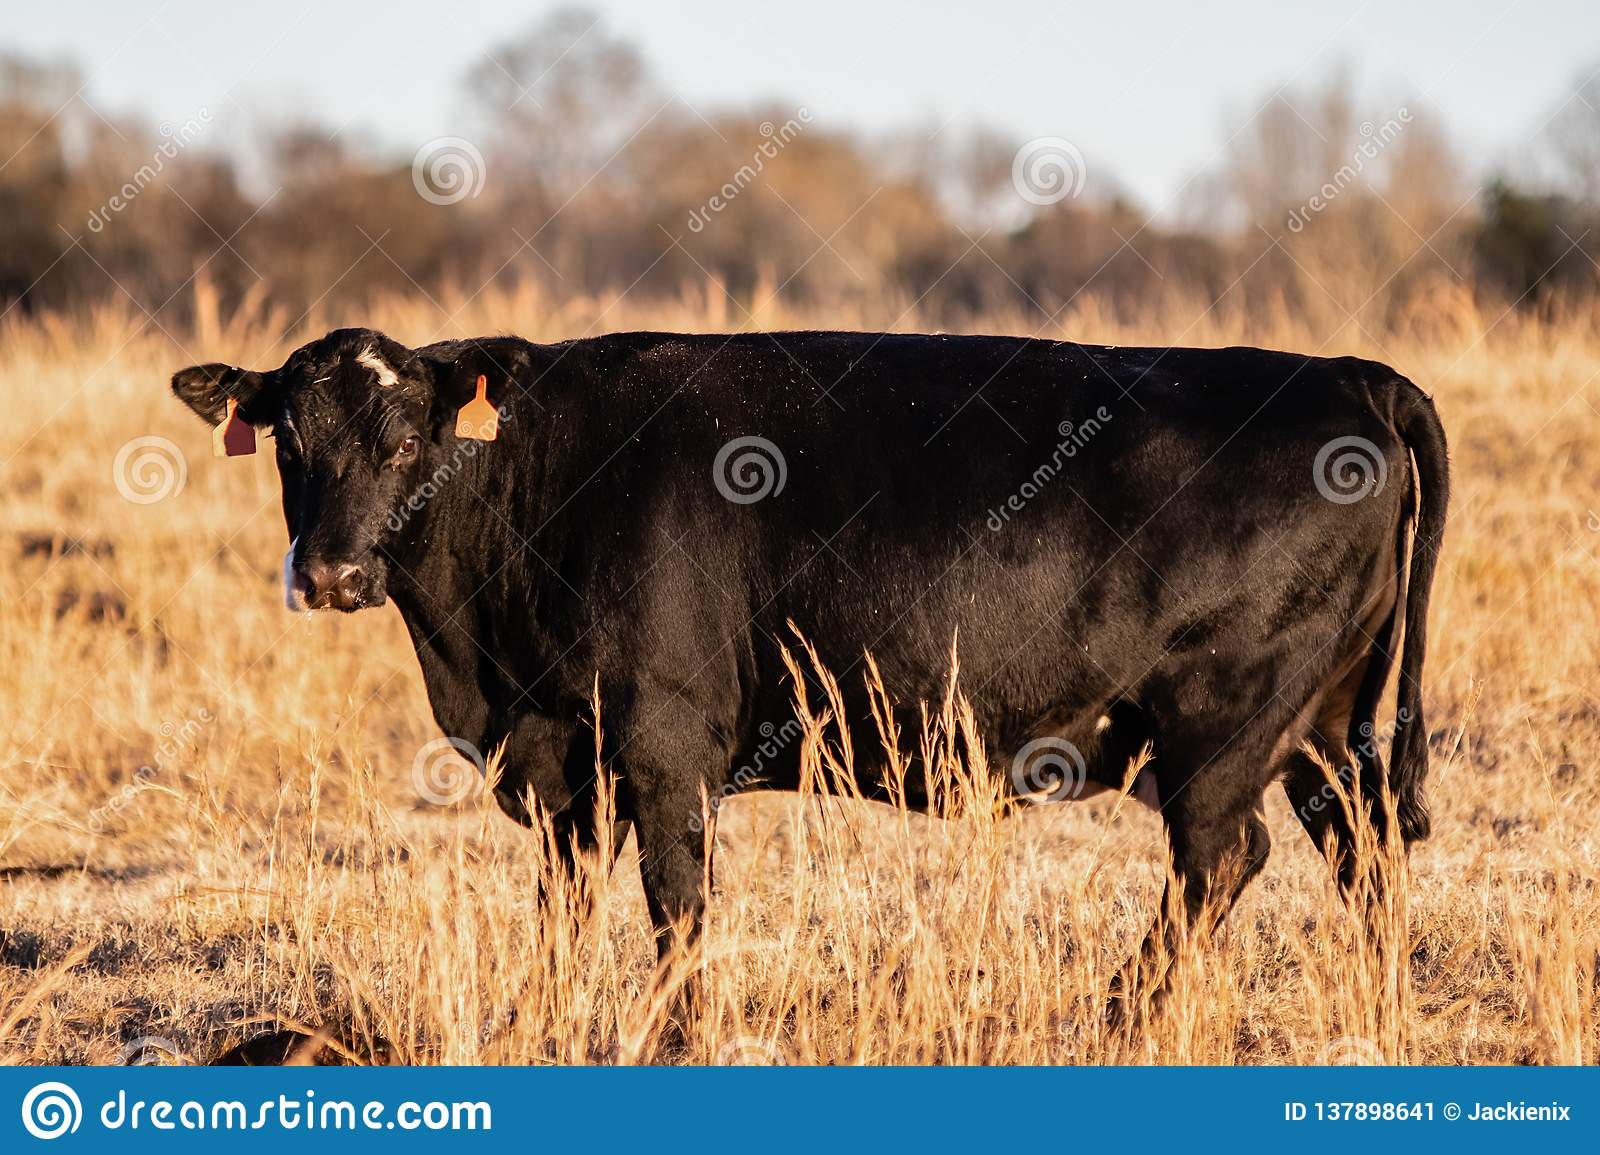 Crossbred Angus beef cow in a dormant brown pasture